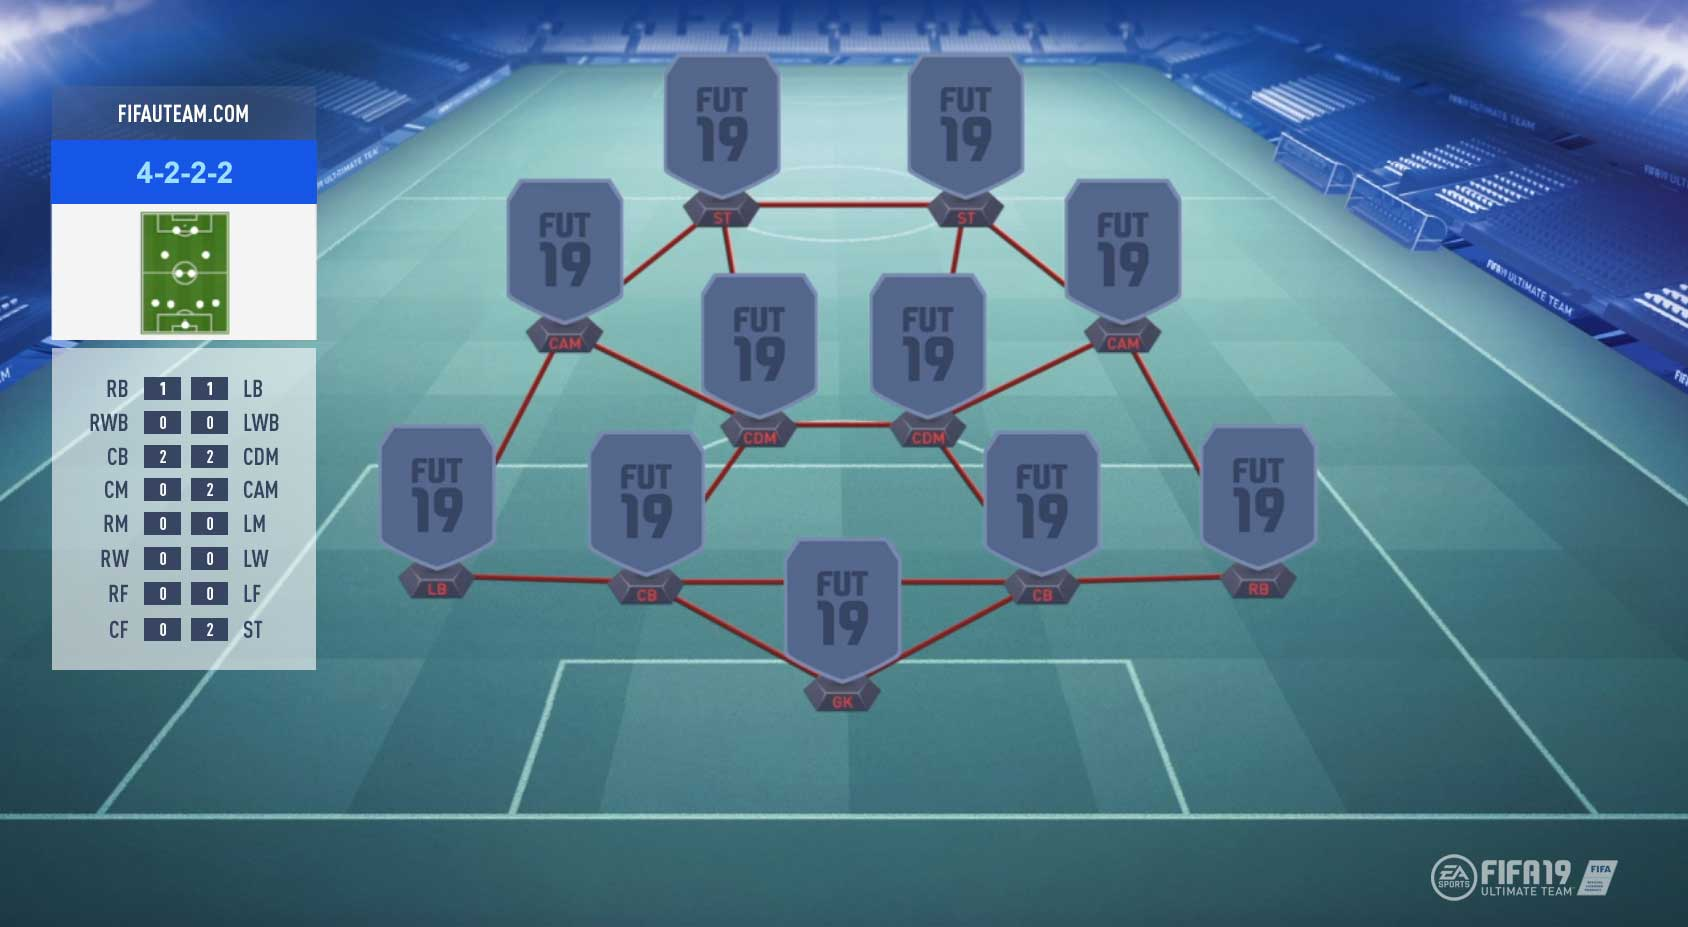 FIFA 19 Formations Guide – 4-2-2-2